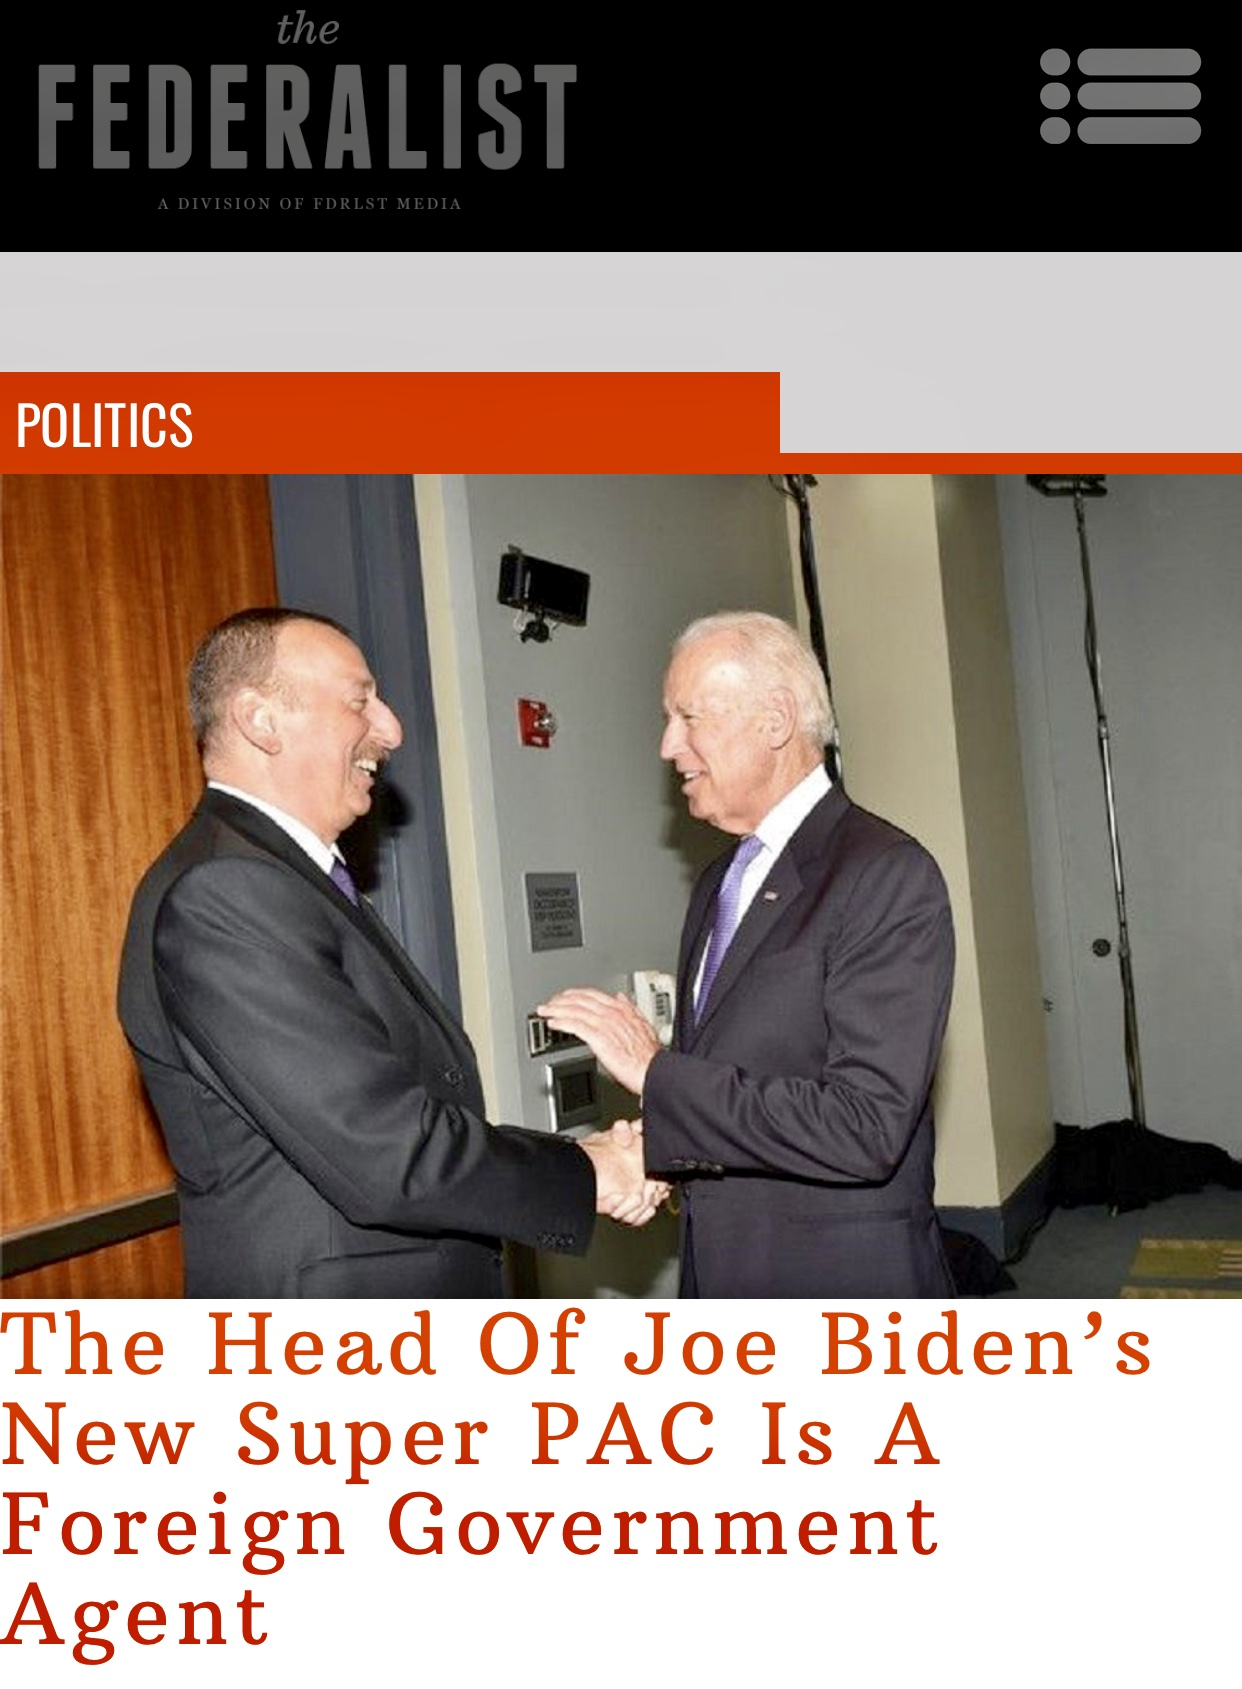 Biden's New Super PAC Is Run By A Foreign Govt Agent